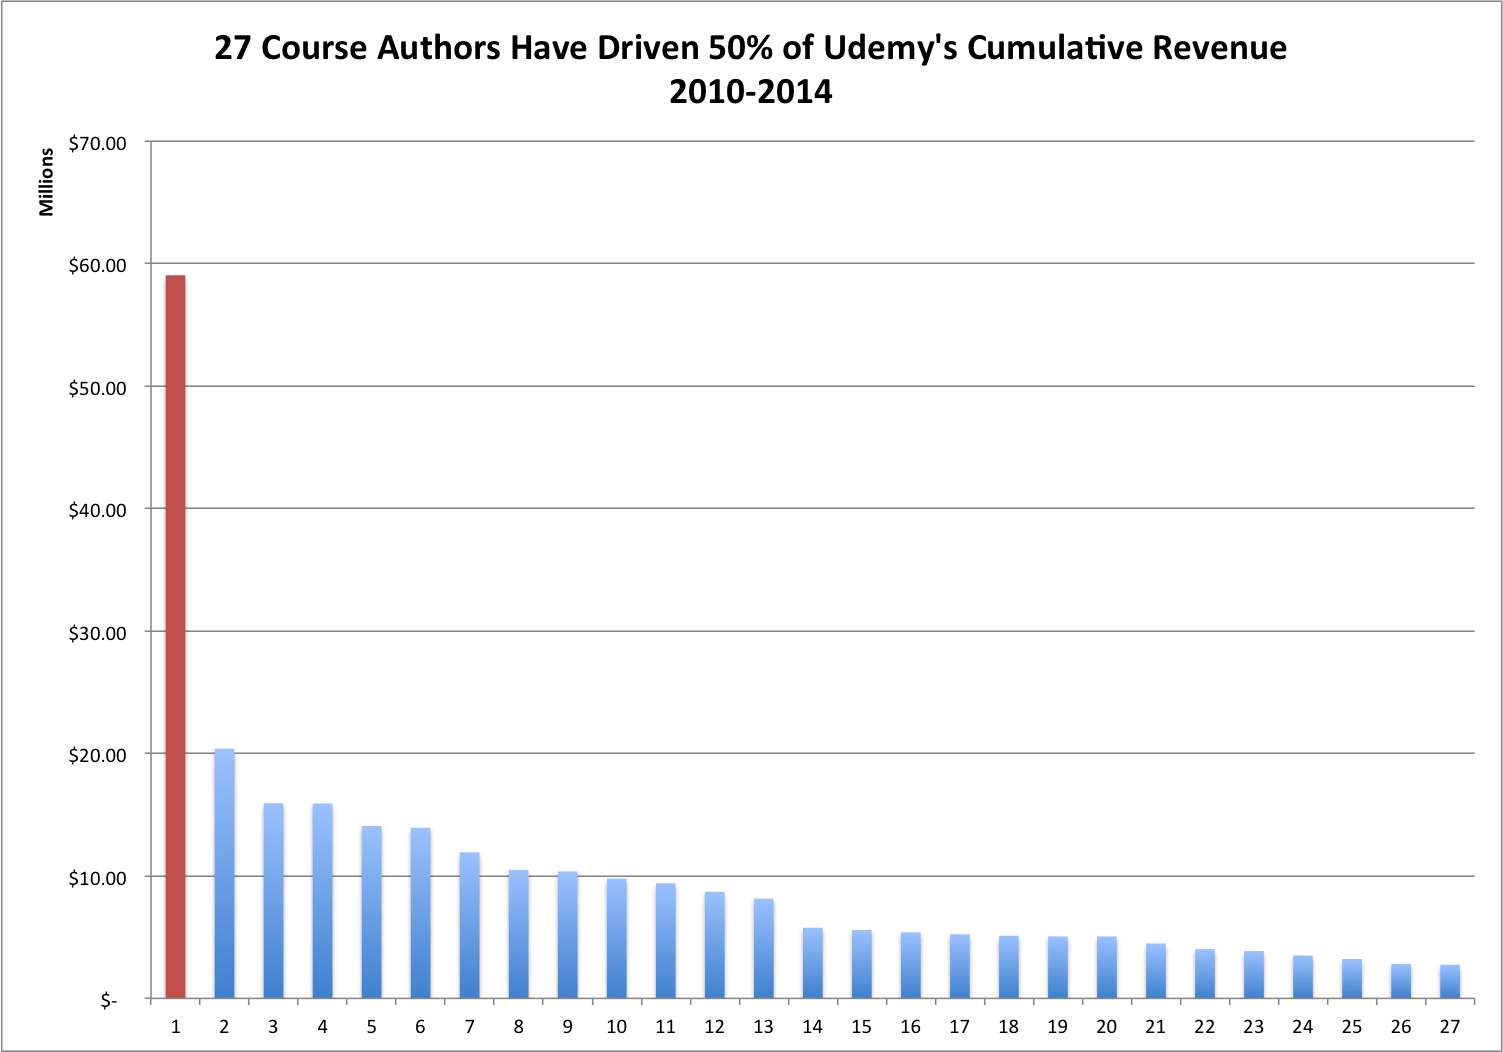 In November 2014, 27 course providers were responsible for 50% of Udemy's revenues.